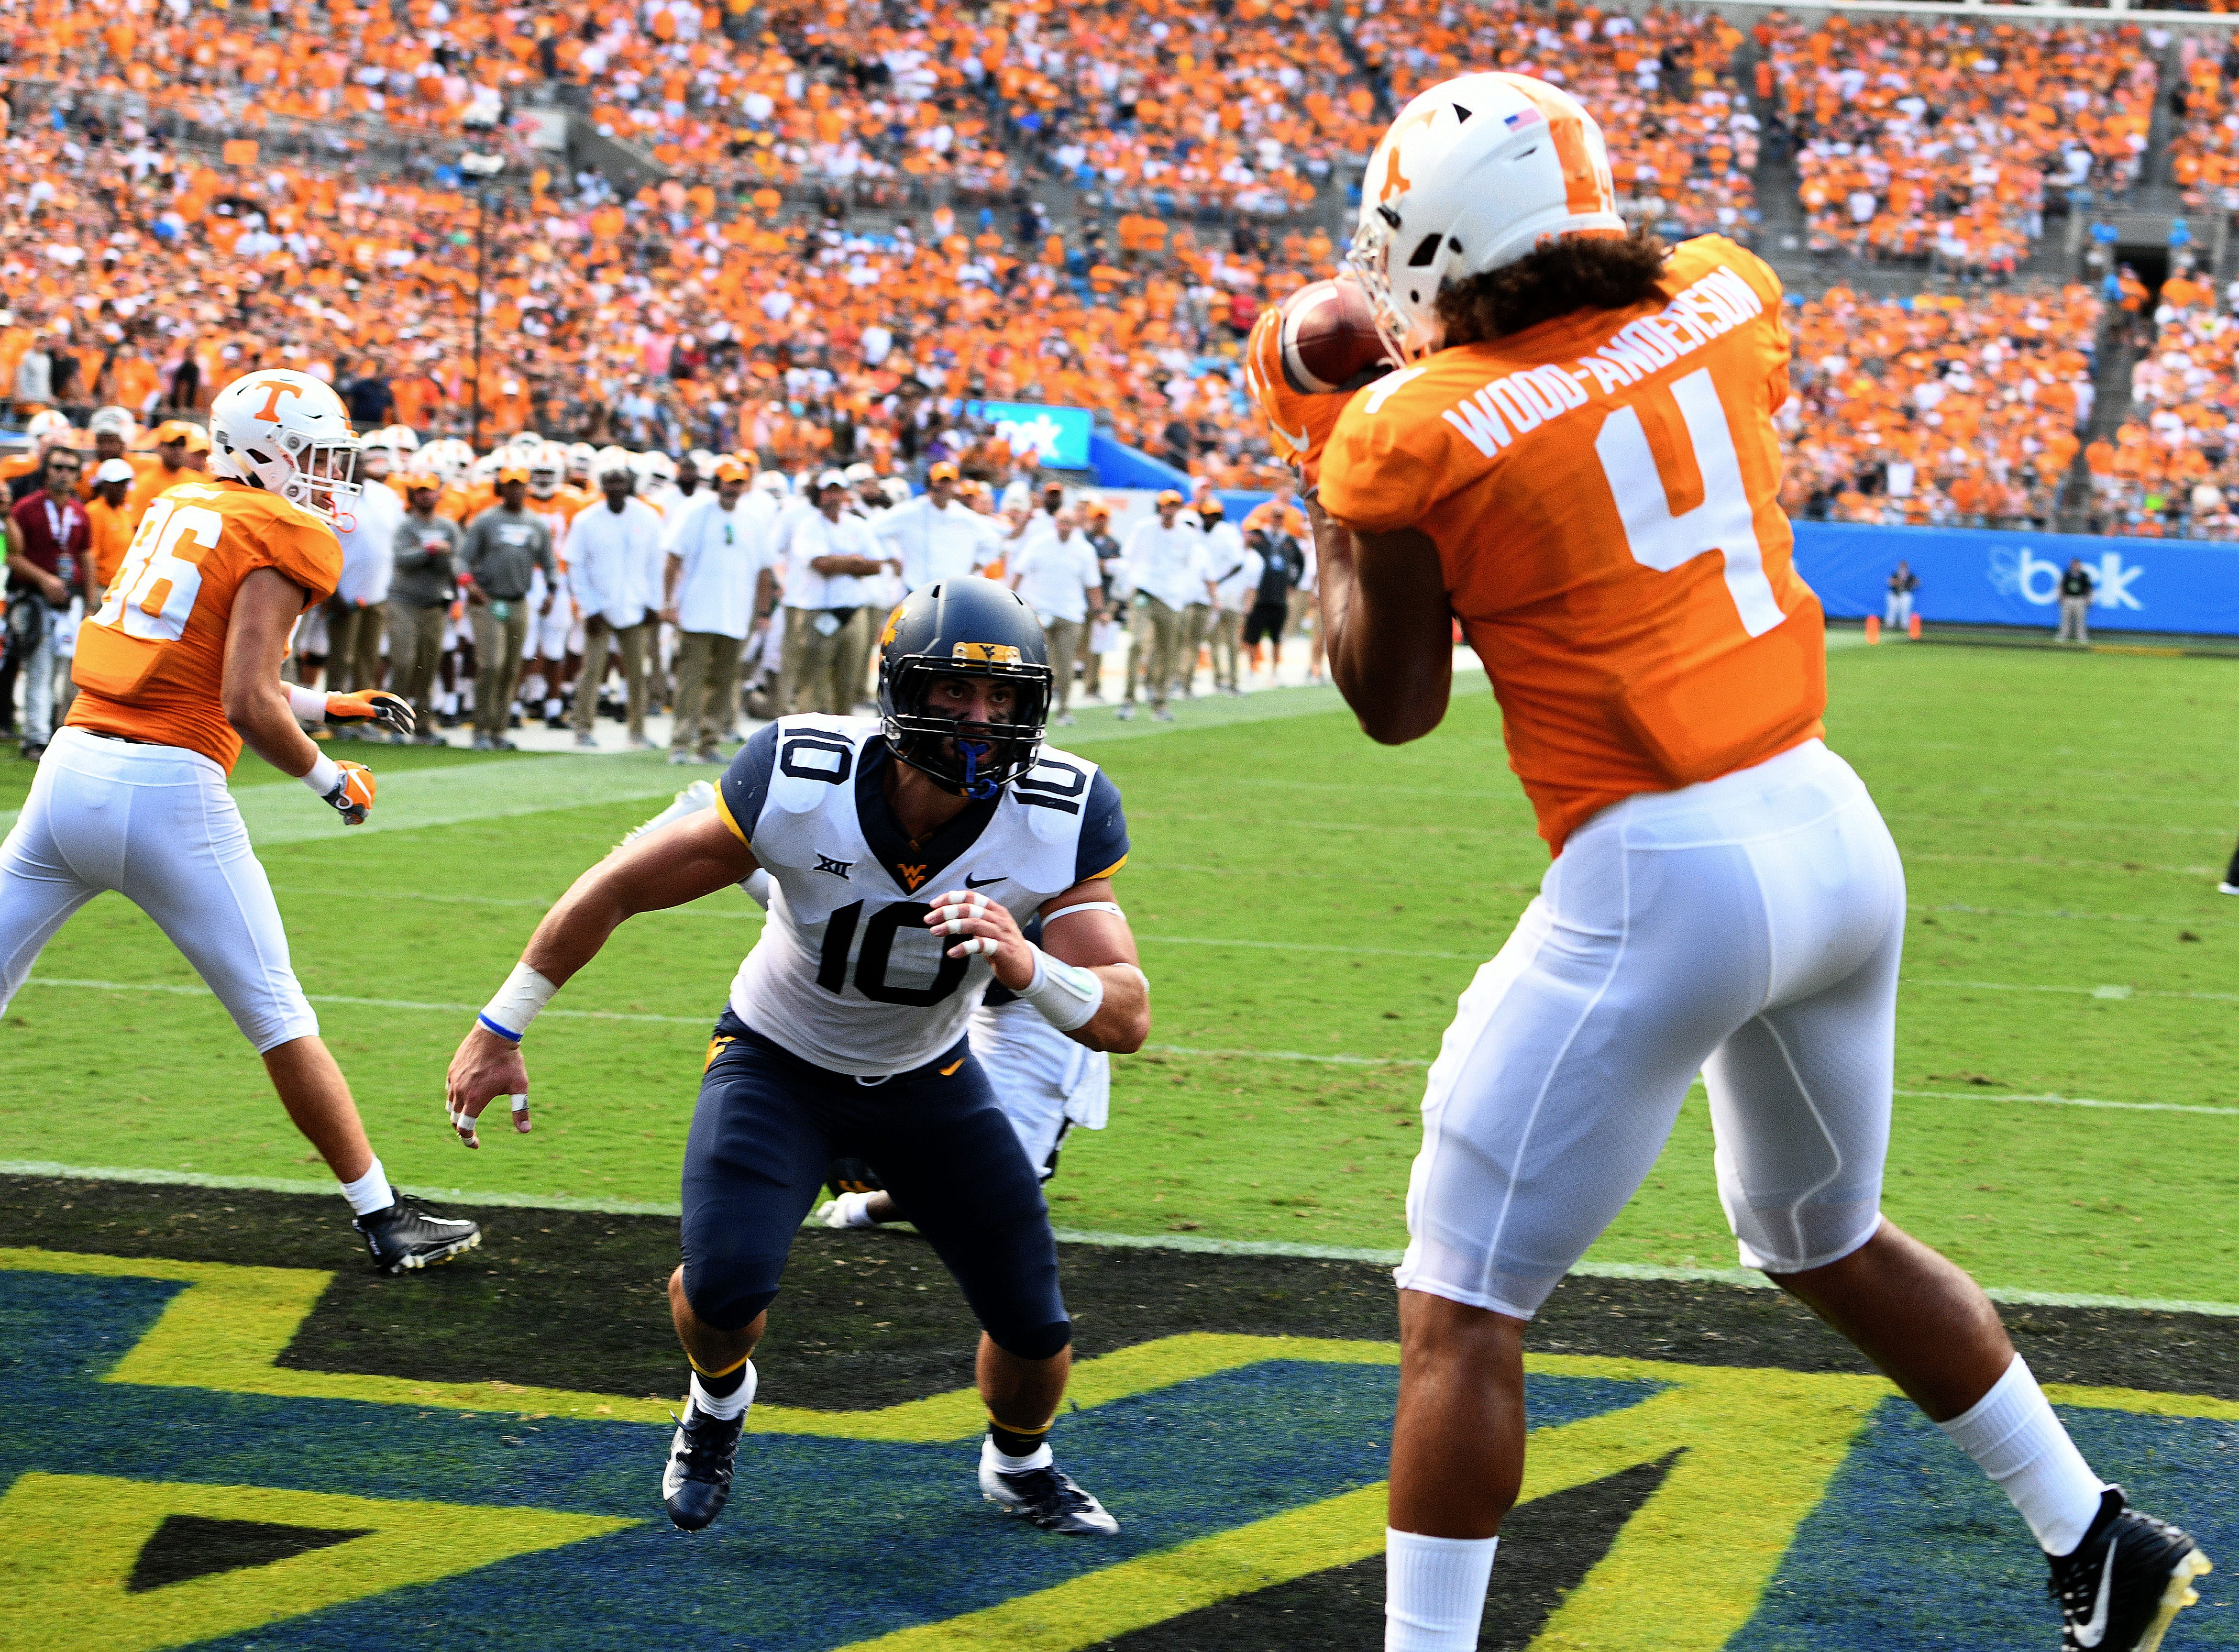 Tennessee tight end Dominick Wood-Anderson (4) scores a touchdown during first half action against the West Virginia Mourtaineers in the Belk College Kickoff game in Charlotte, NC Saturday, September 1, 2018.